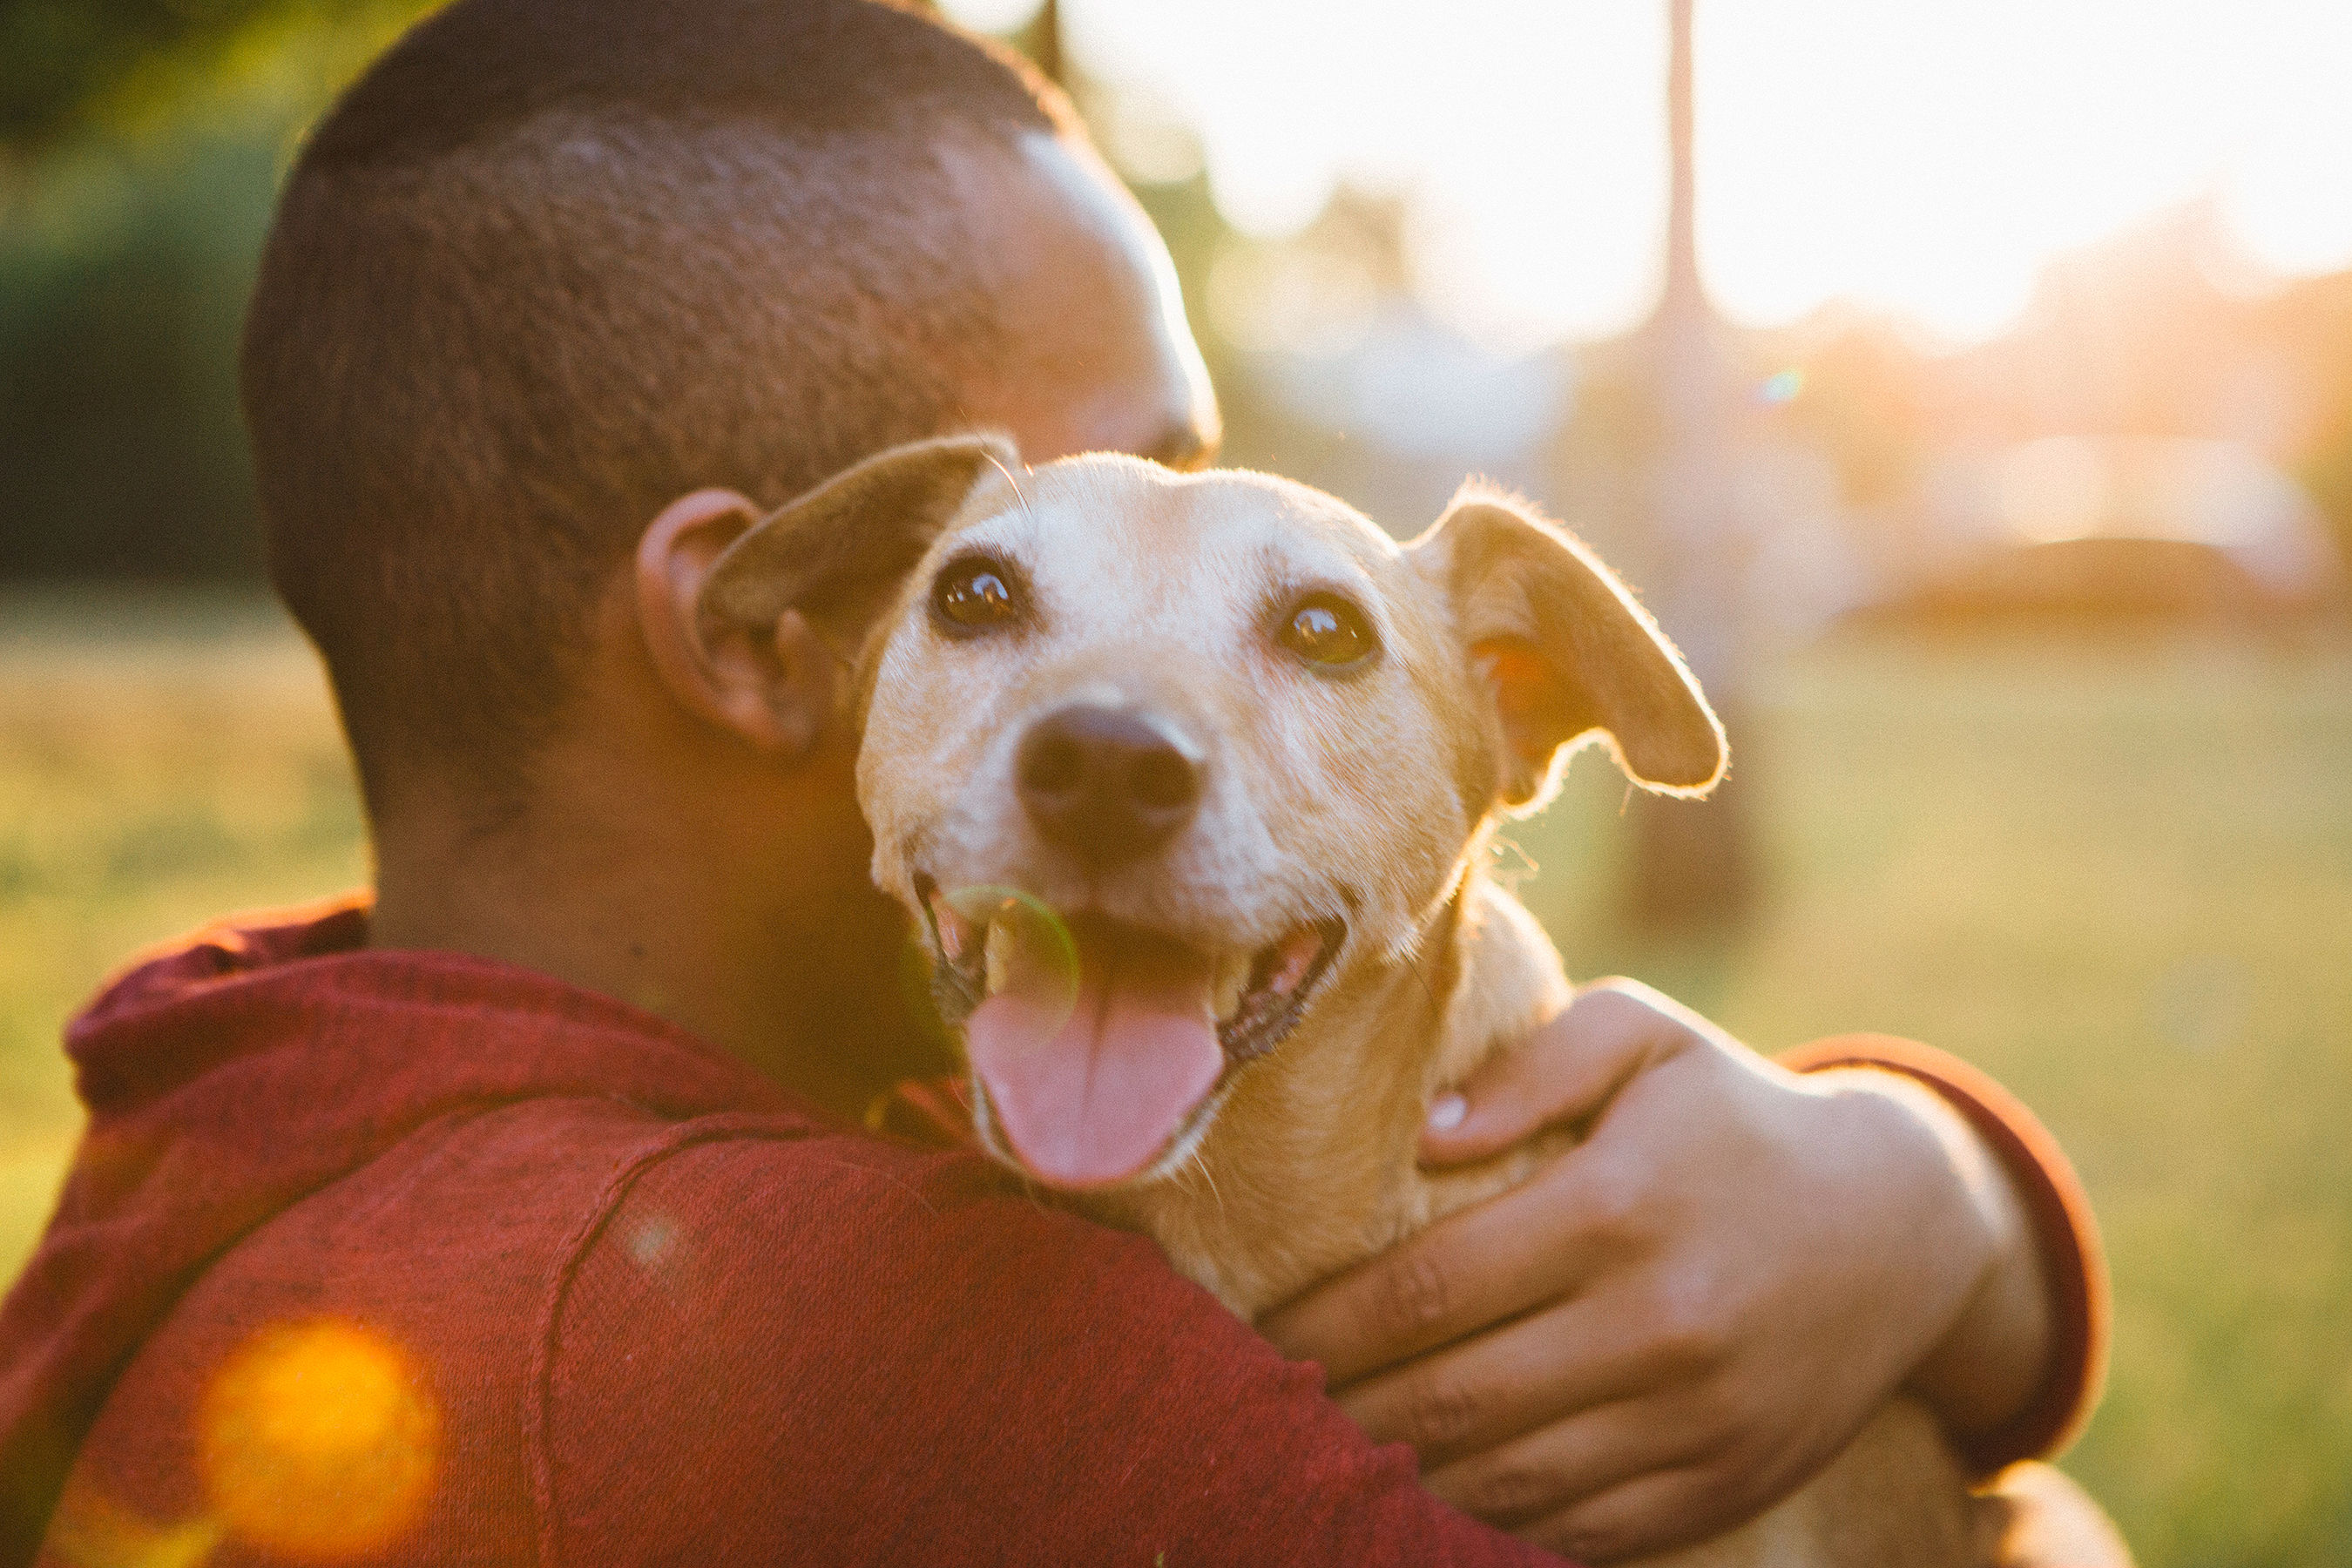 Over 70 Percent of Dog Owners Admit They Prefer Spending Time with Their Pets over Other People